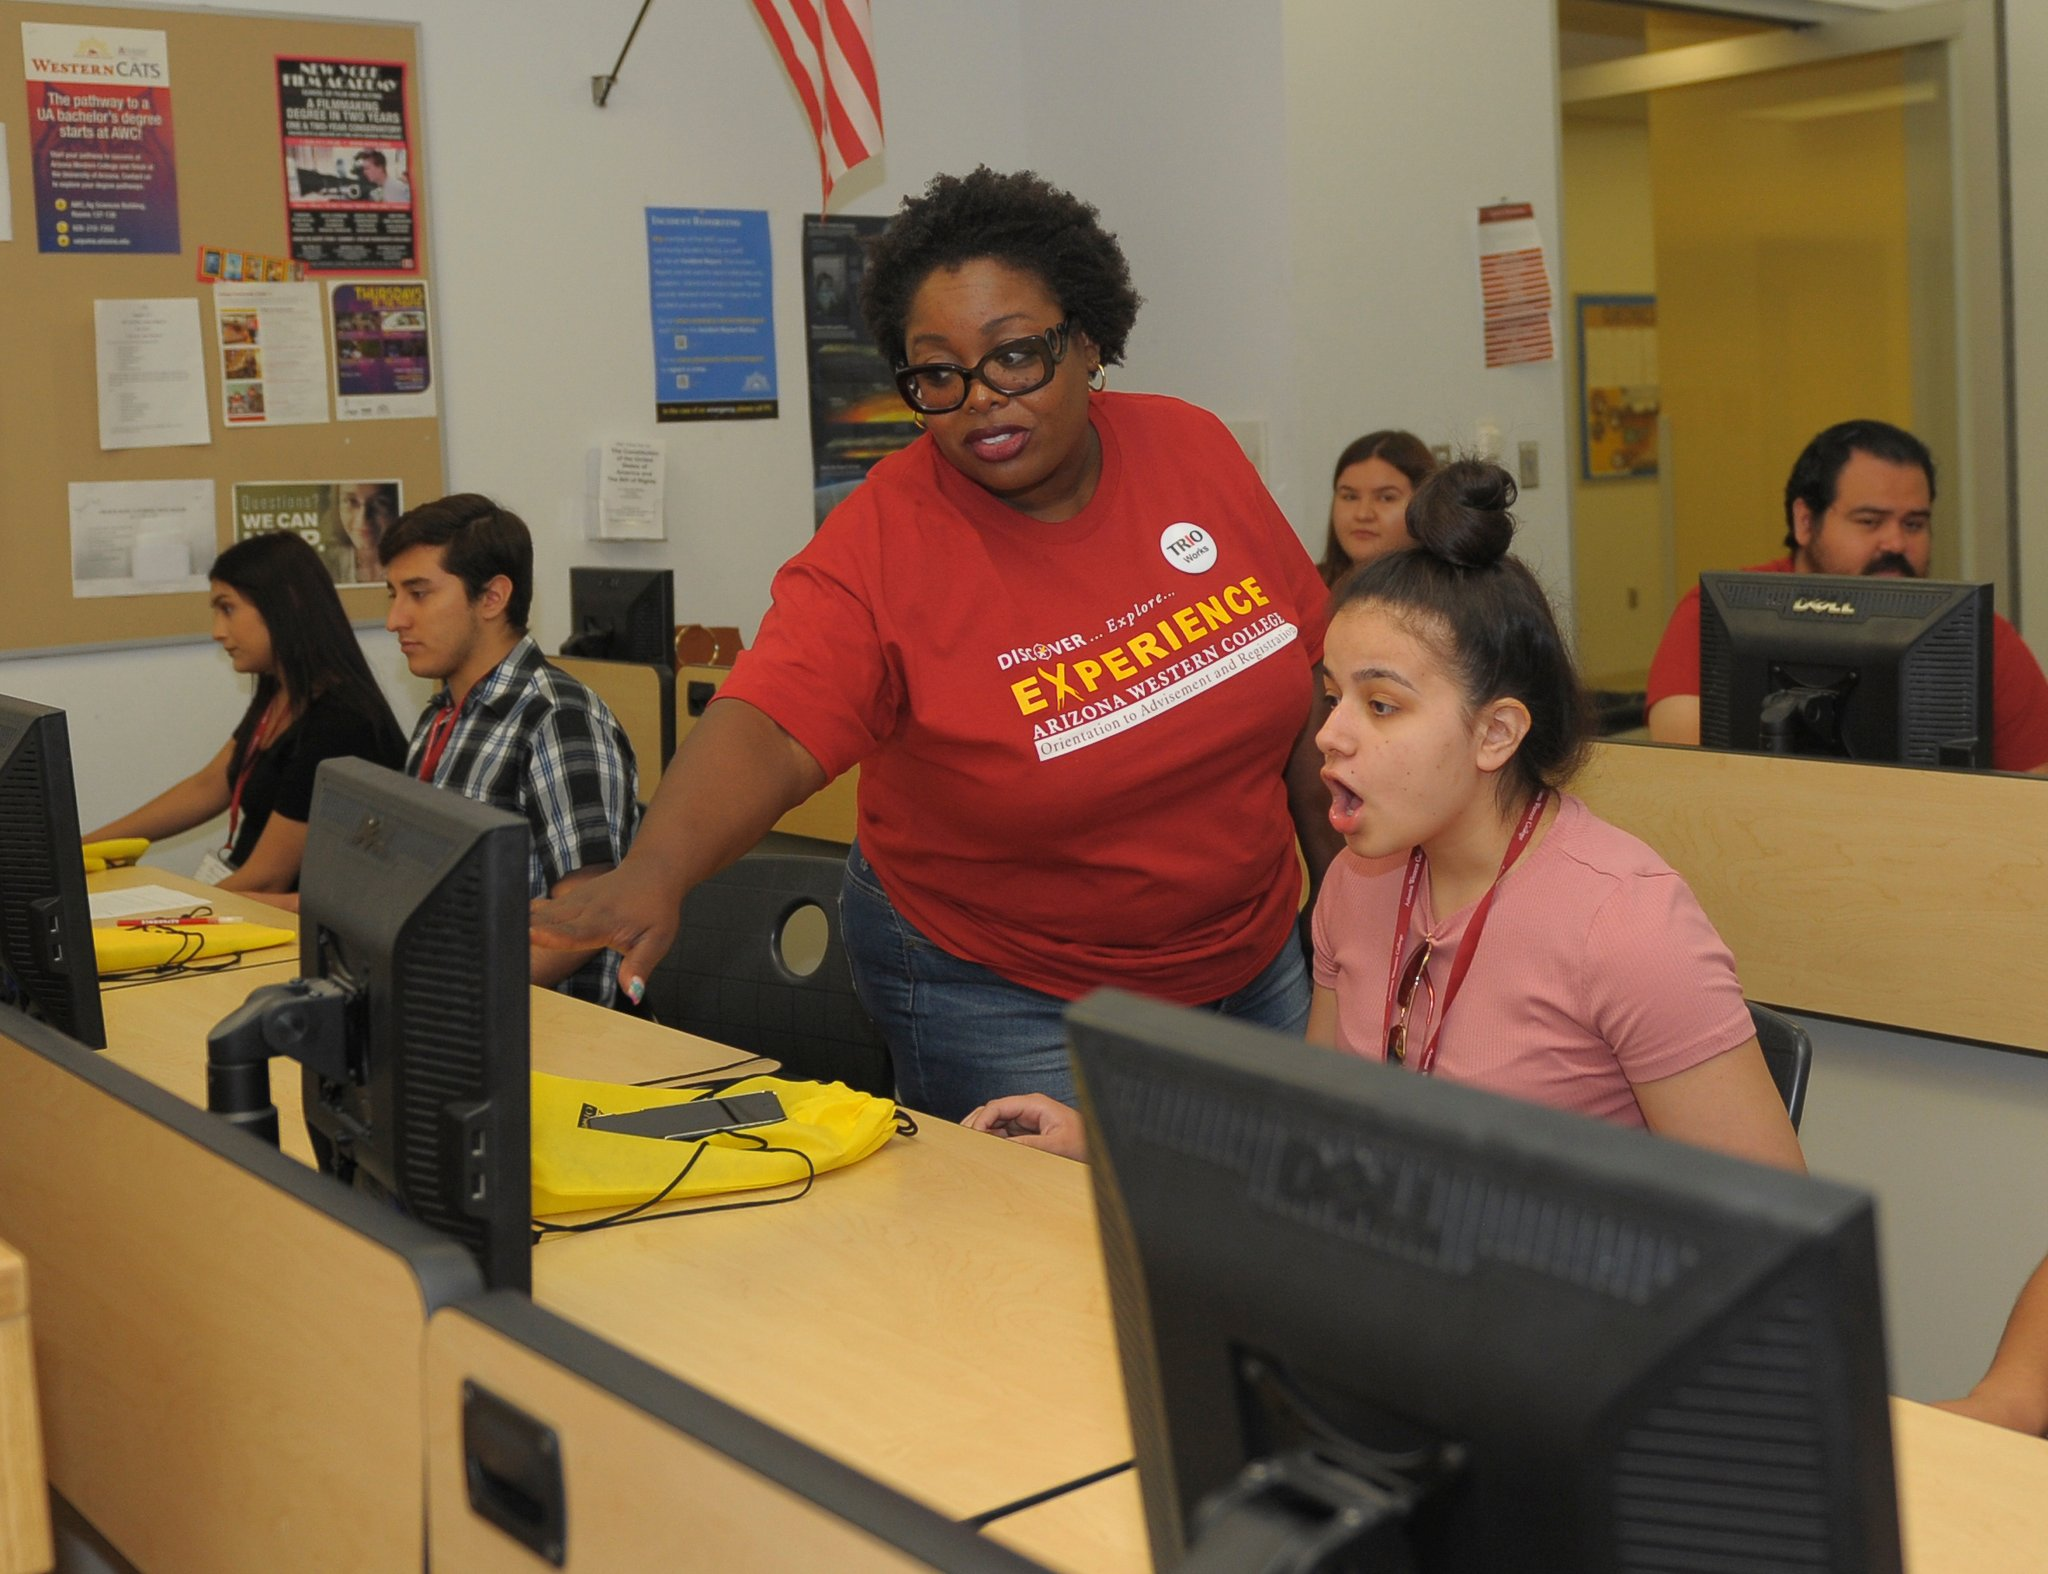 African-American woman points to a computer screen as she helps a student.